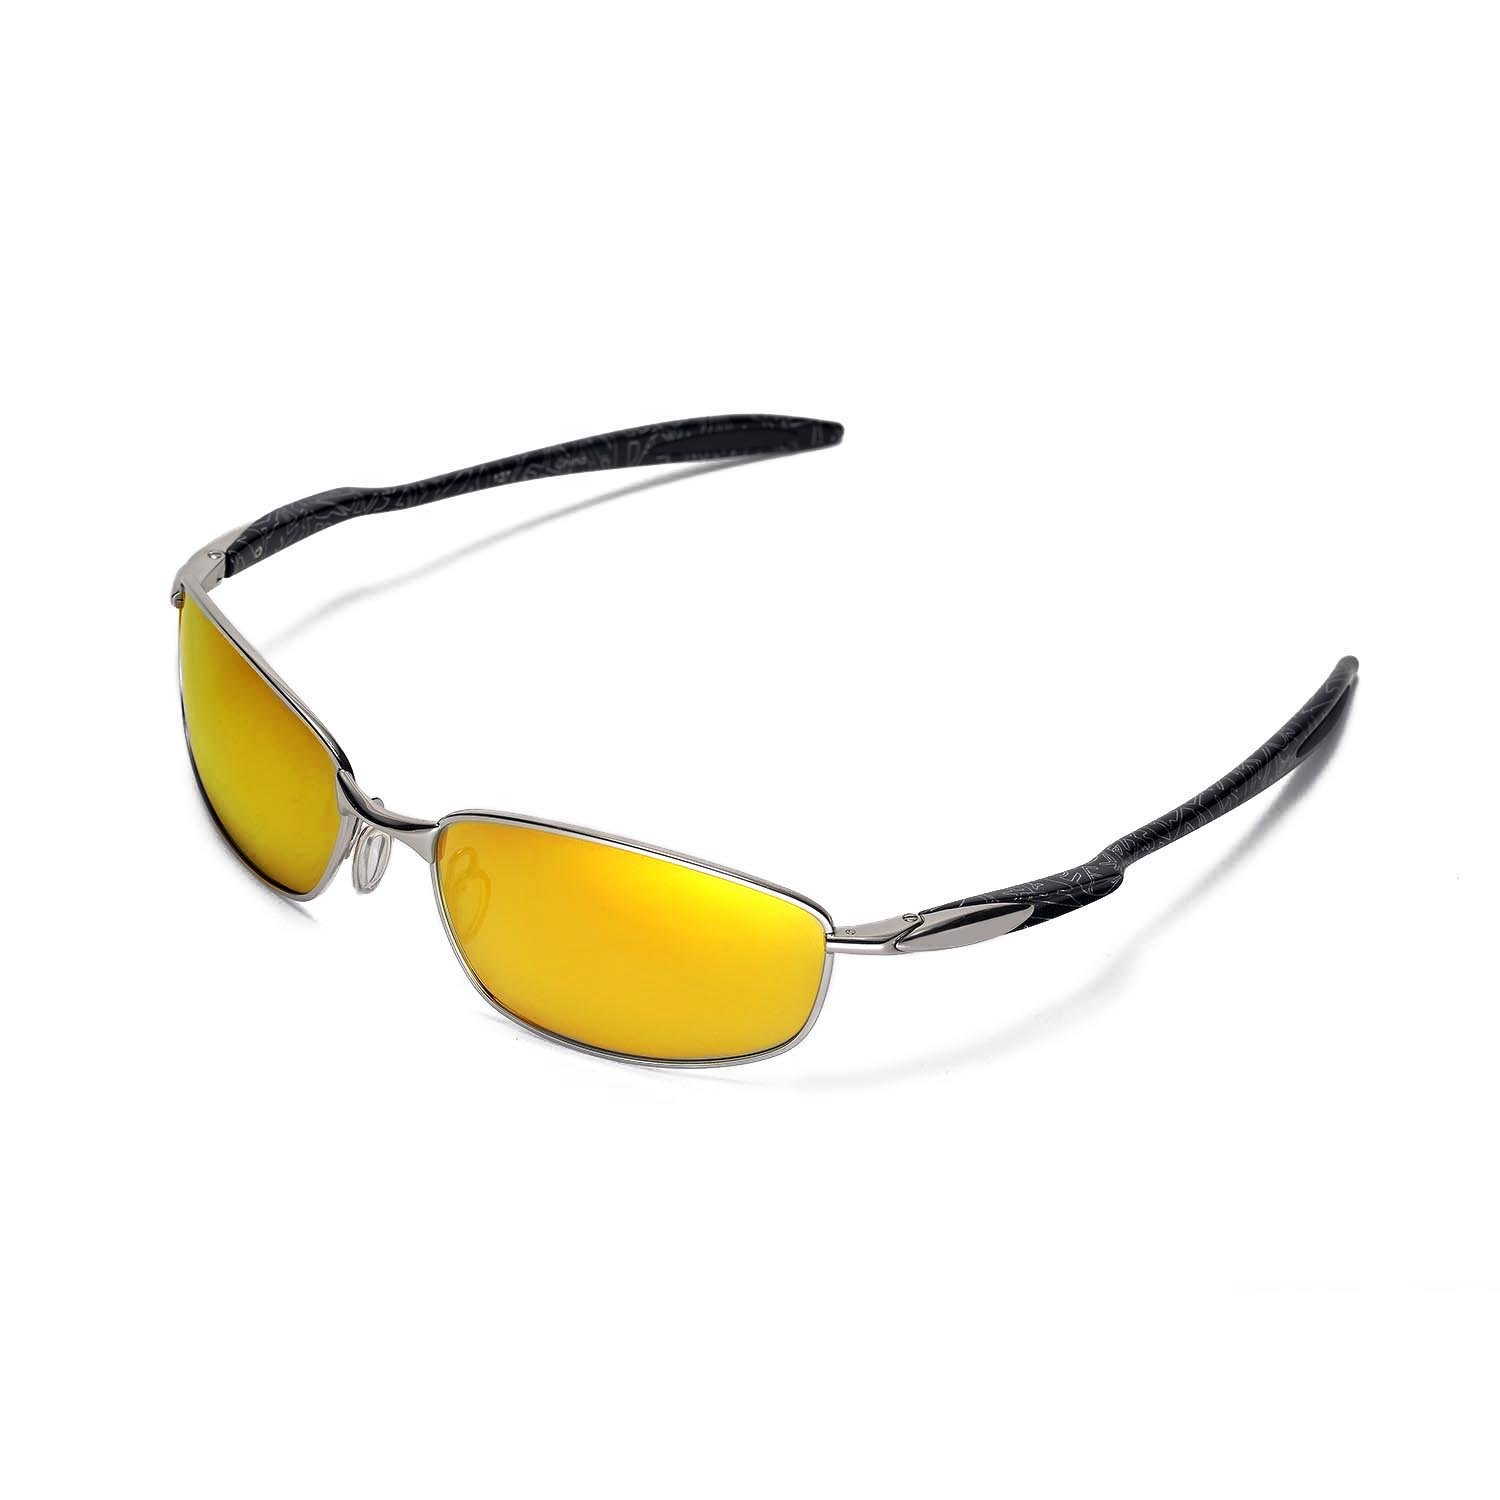 34ba3af60f9 Amazon.com   Walleva Replacement Lenses for Oakley Blender Sunglasses - 5  Options Available (24K Gold Mirror Coated - Polarized)   Sports   Outdoors